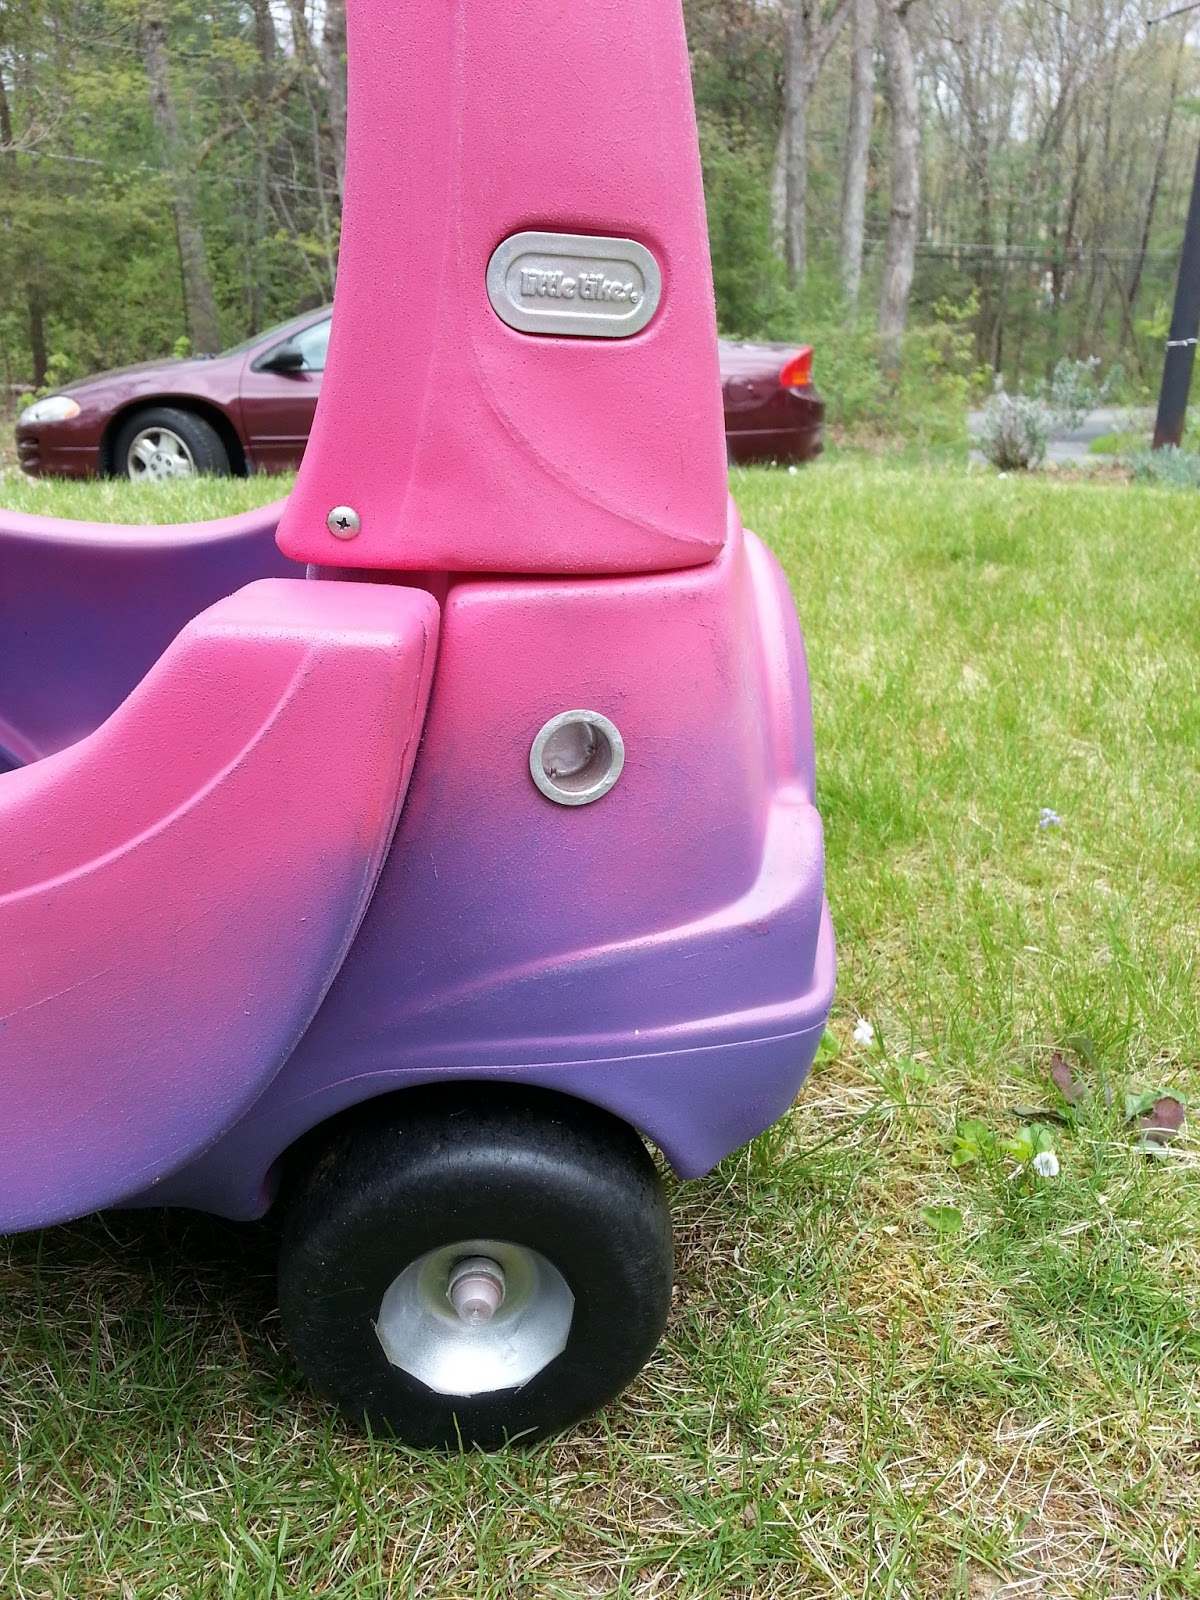 Our Cozy Coupe was a hand-me-down from a neighbour, so it could definitely do with a remodel, although keeping my son away from it for a day or two may be a struggle! Eschelle says September 2, at am.